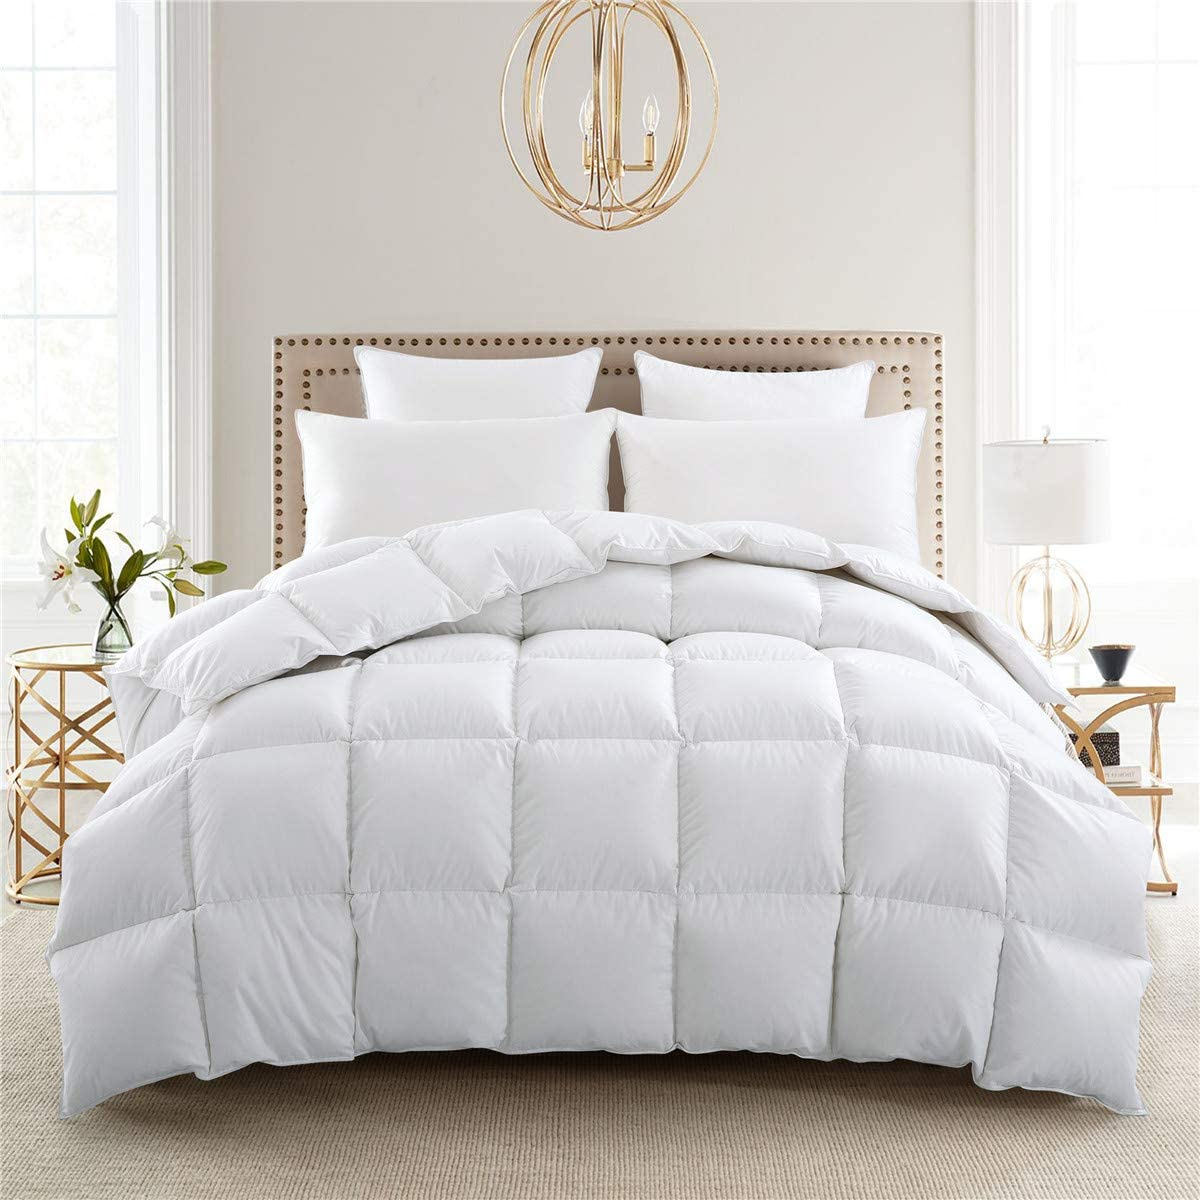 puredown Lightweight Warmth Duvet Insert Down Comforter, Light Full/Queen